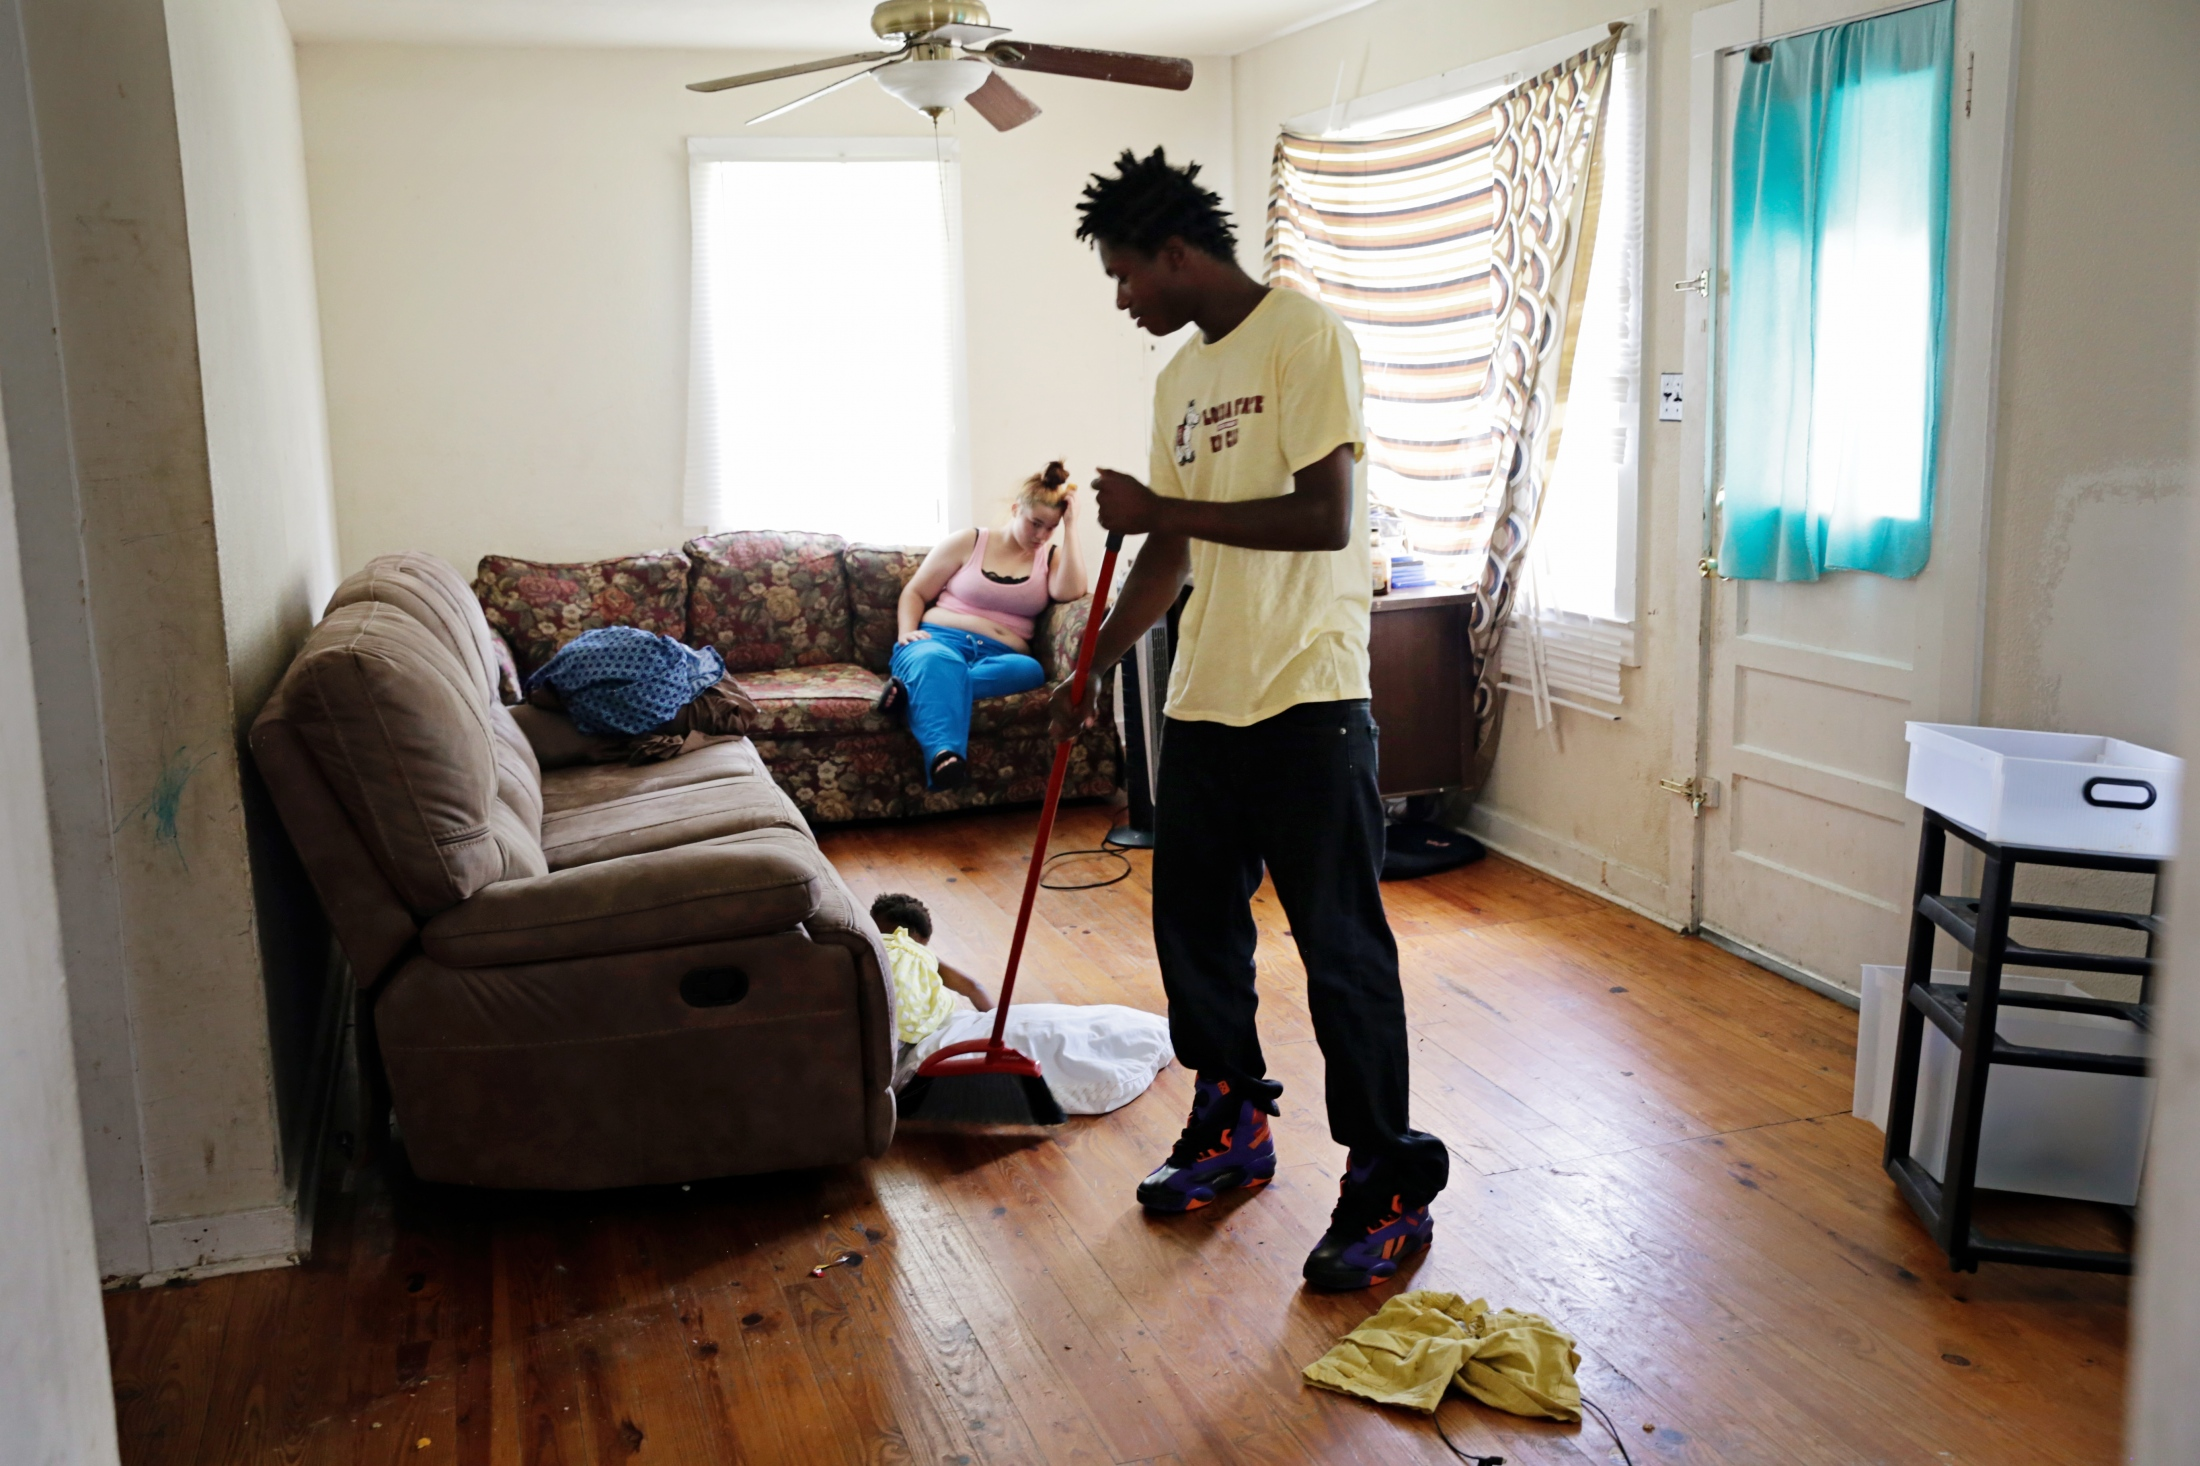 Tyrese Ross sweeps up the living room of the place he's sleeping, for now, that he shares with 13 other people.